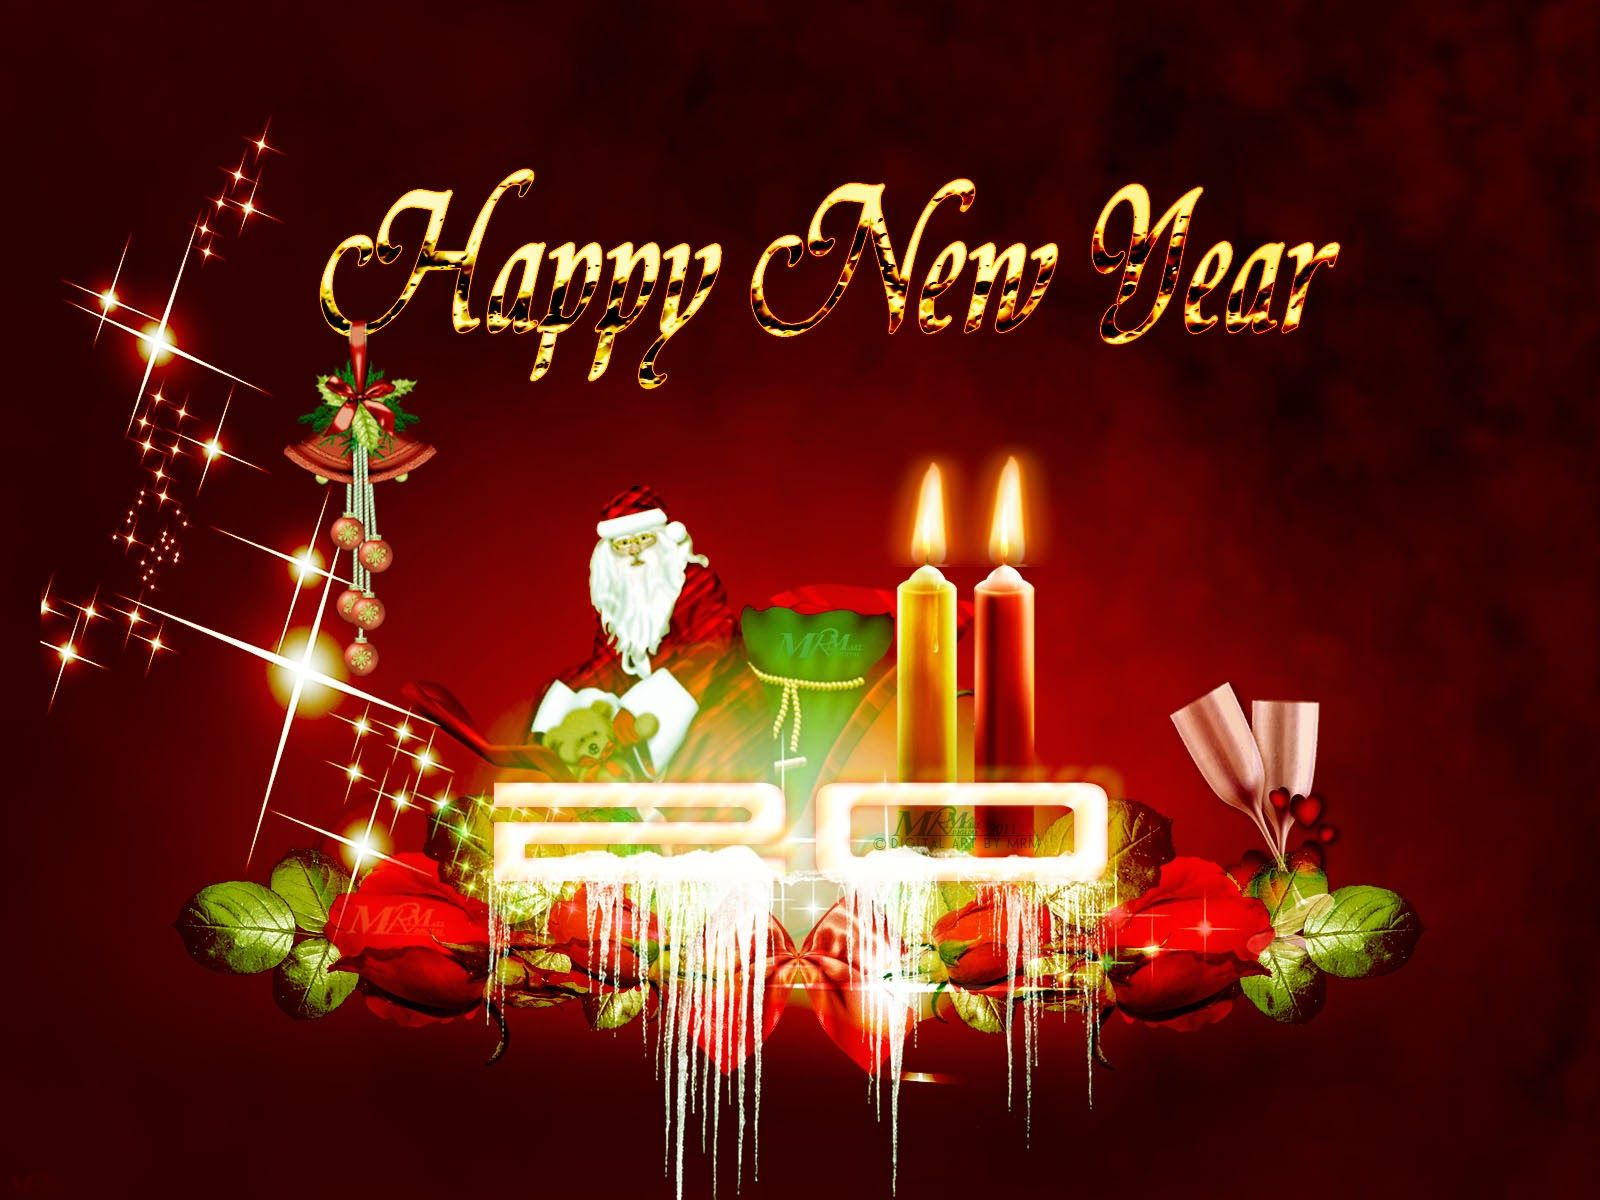 all wishes message wishes card greeting card top 10 new year smstext message